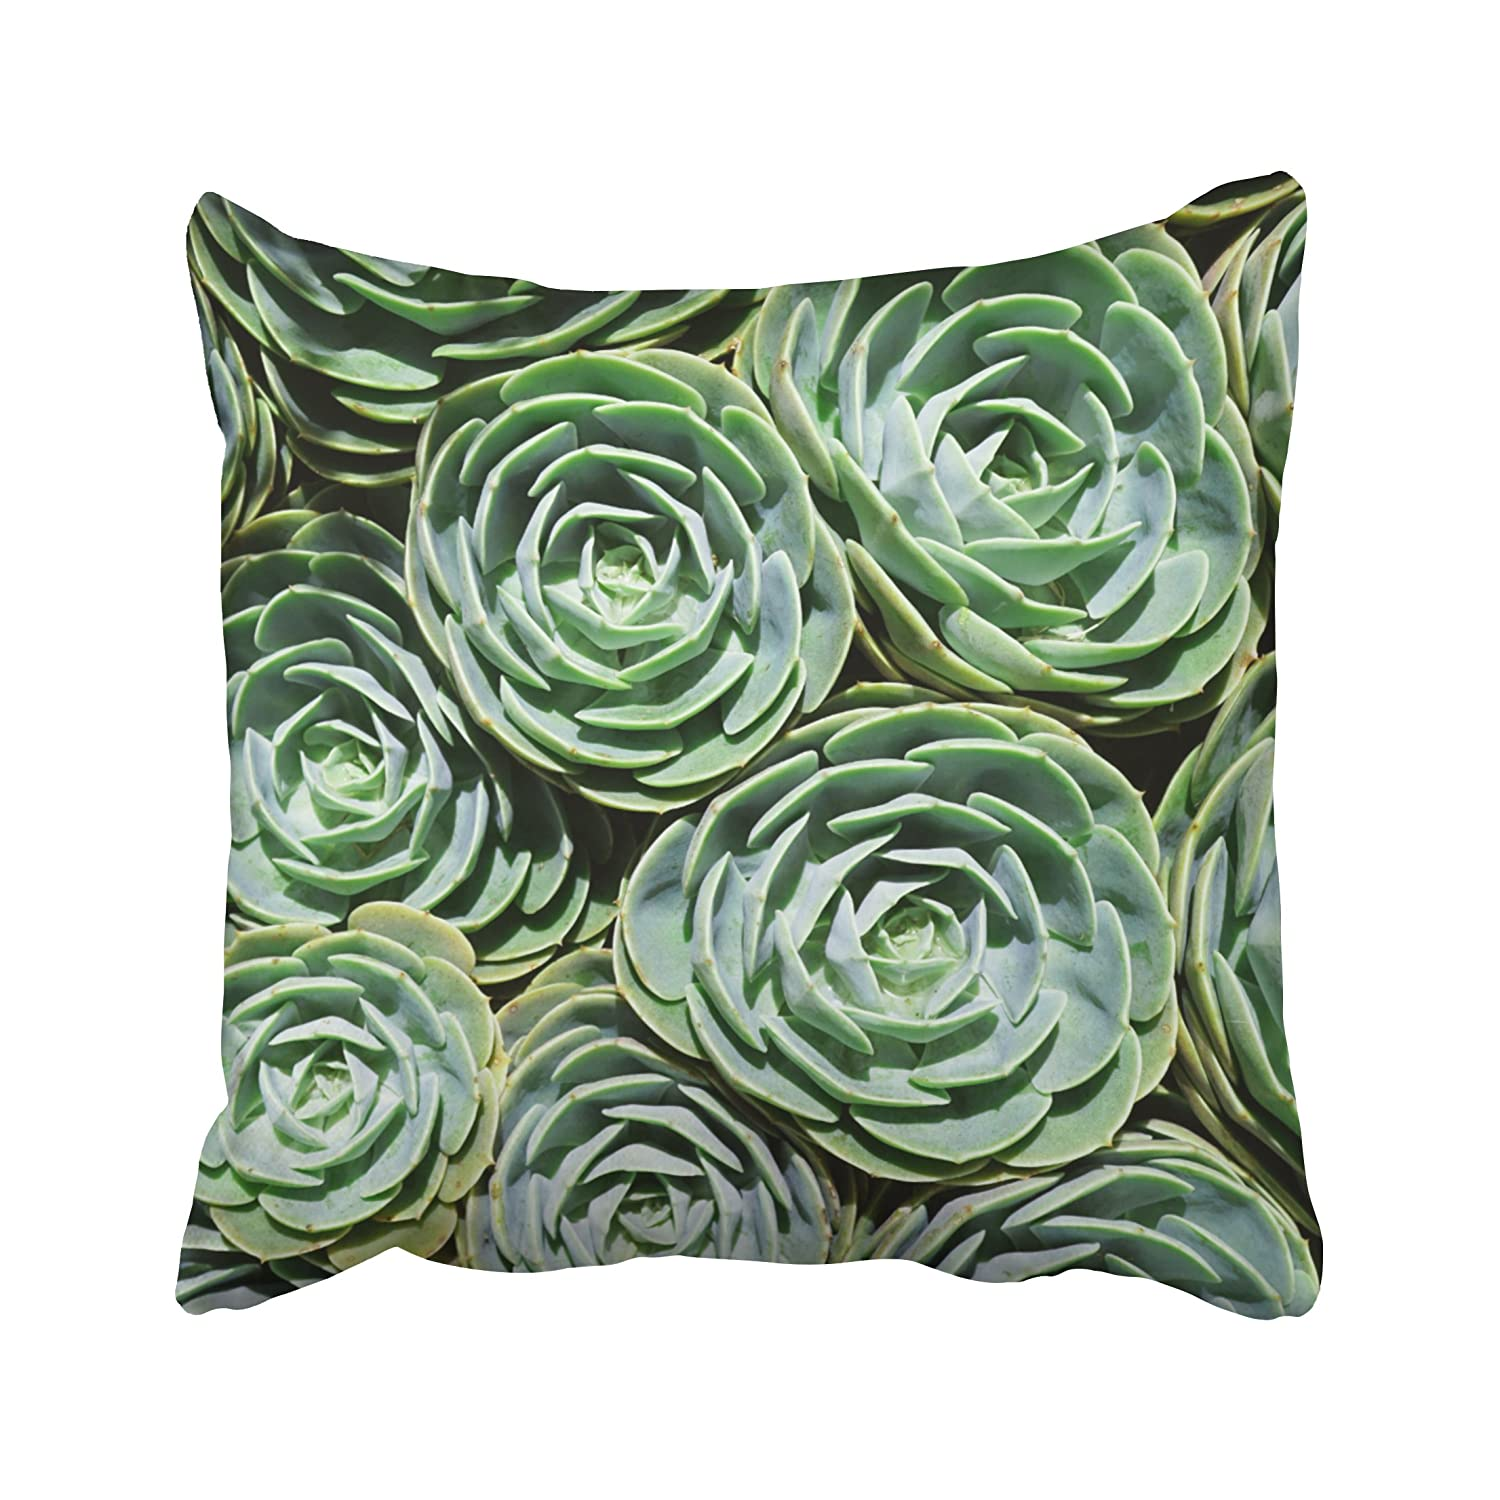 Musesh succulent plant garden botanical leaf prints green Cushions Case Throw Pillow Cover For Sofa Home Decorative Pillowslip Gift Ideas Household Pillowcase Zippered Pillow Covers 16X16Inch